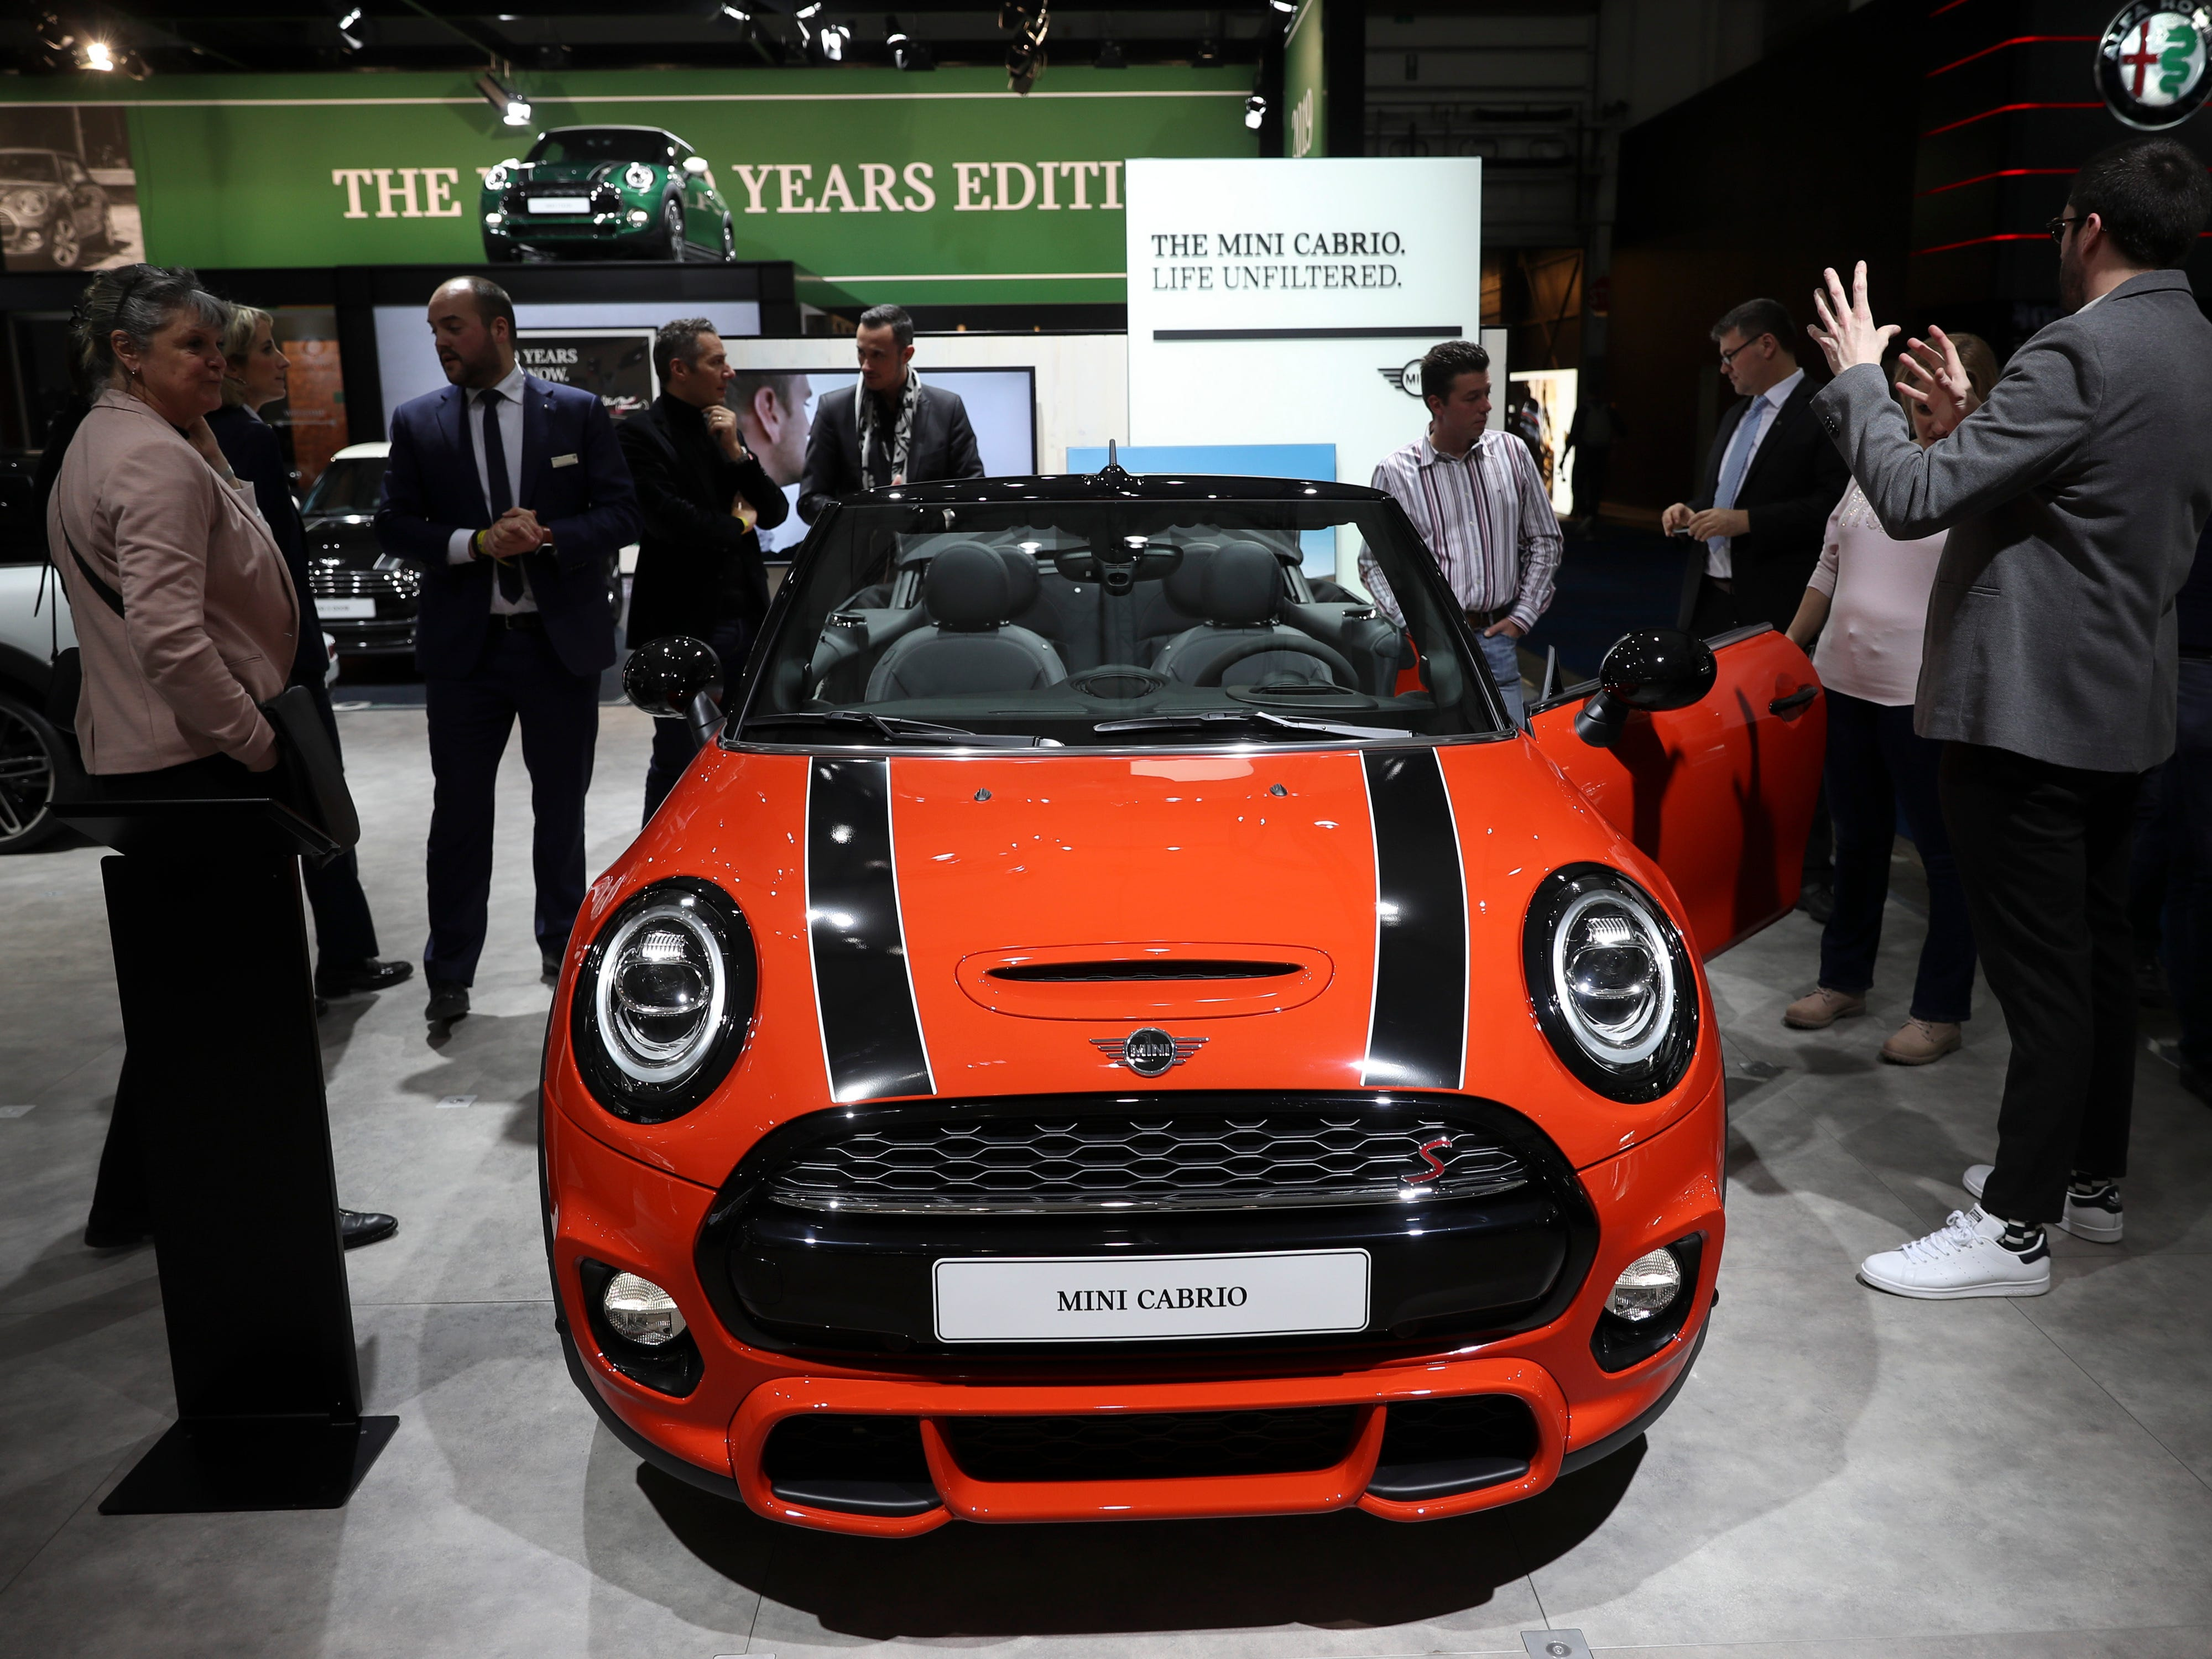 People look at the new Mini Cabrio.